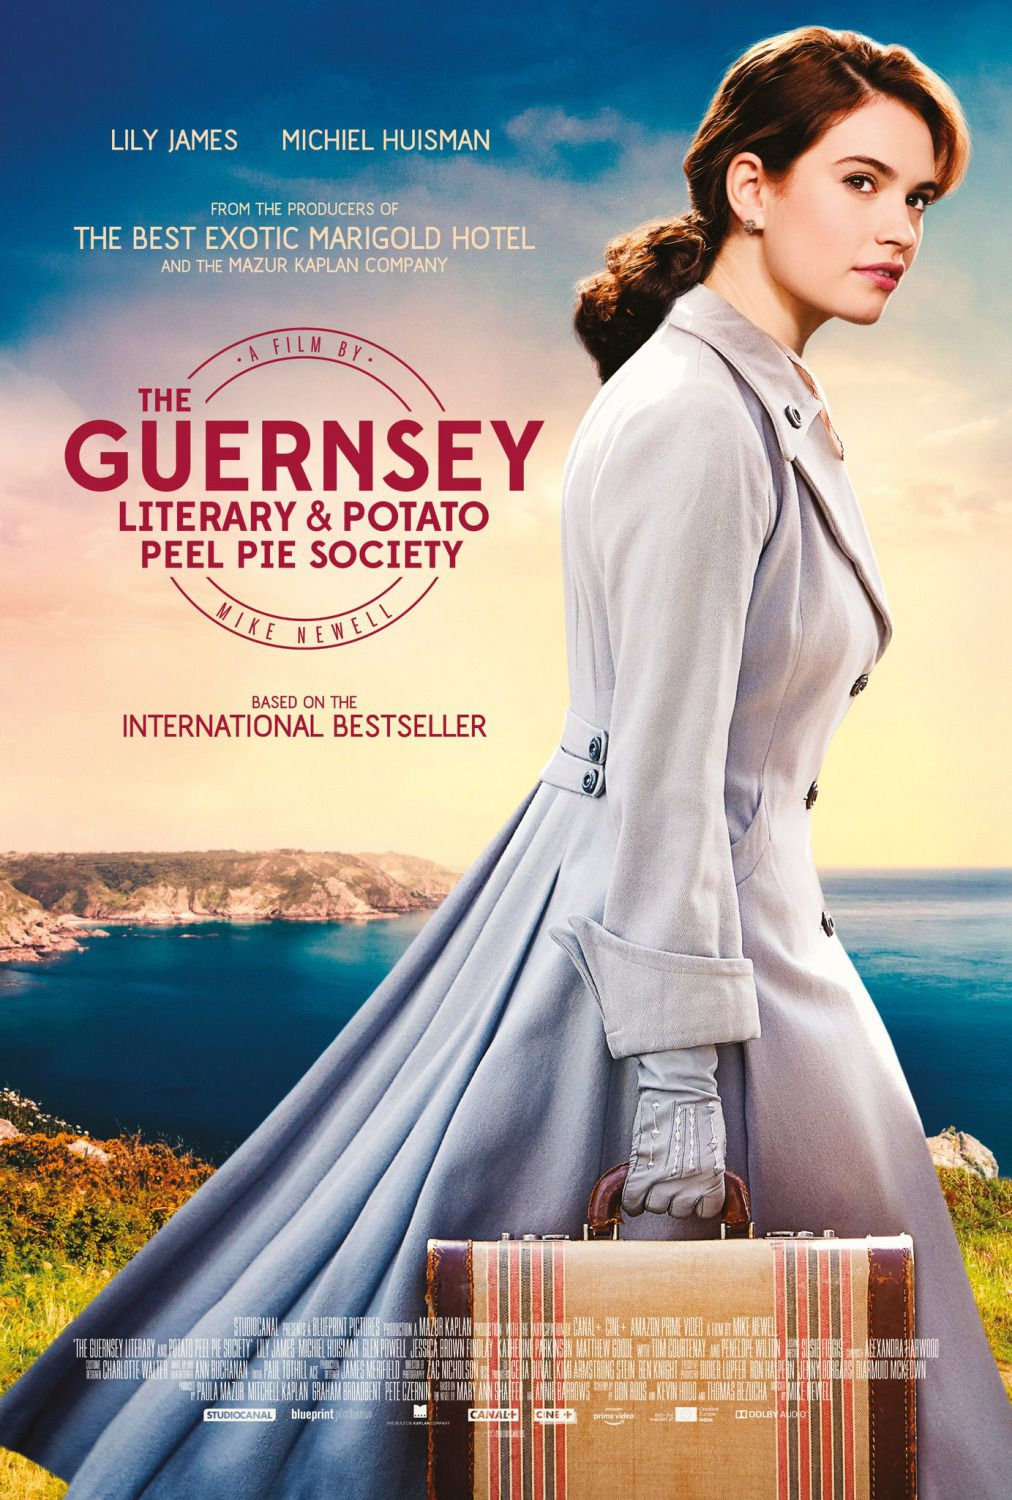 The Guernsey Literary and Potato Peel Pie Society - film poster